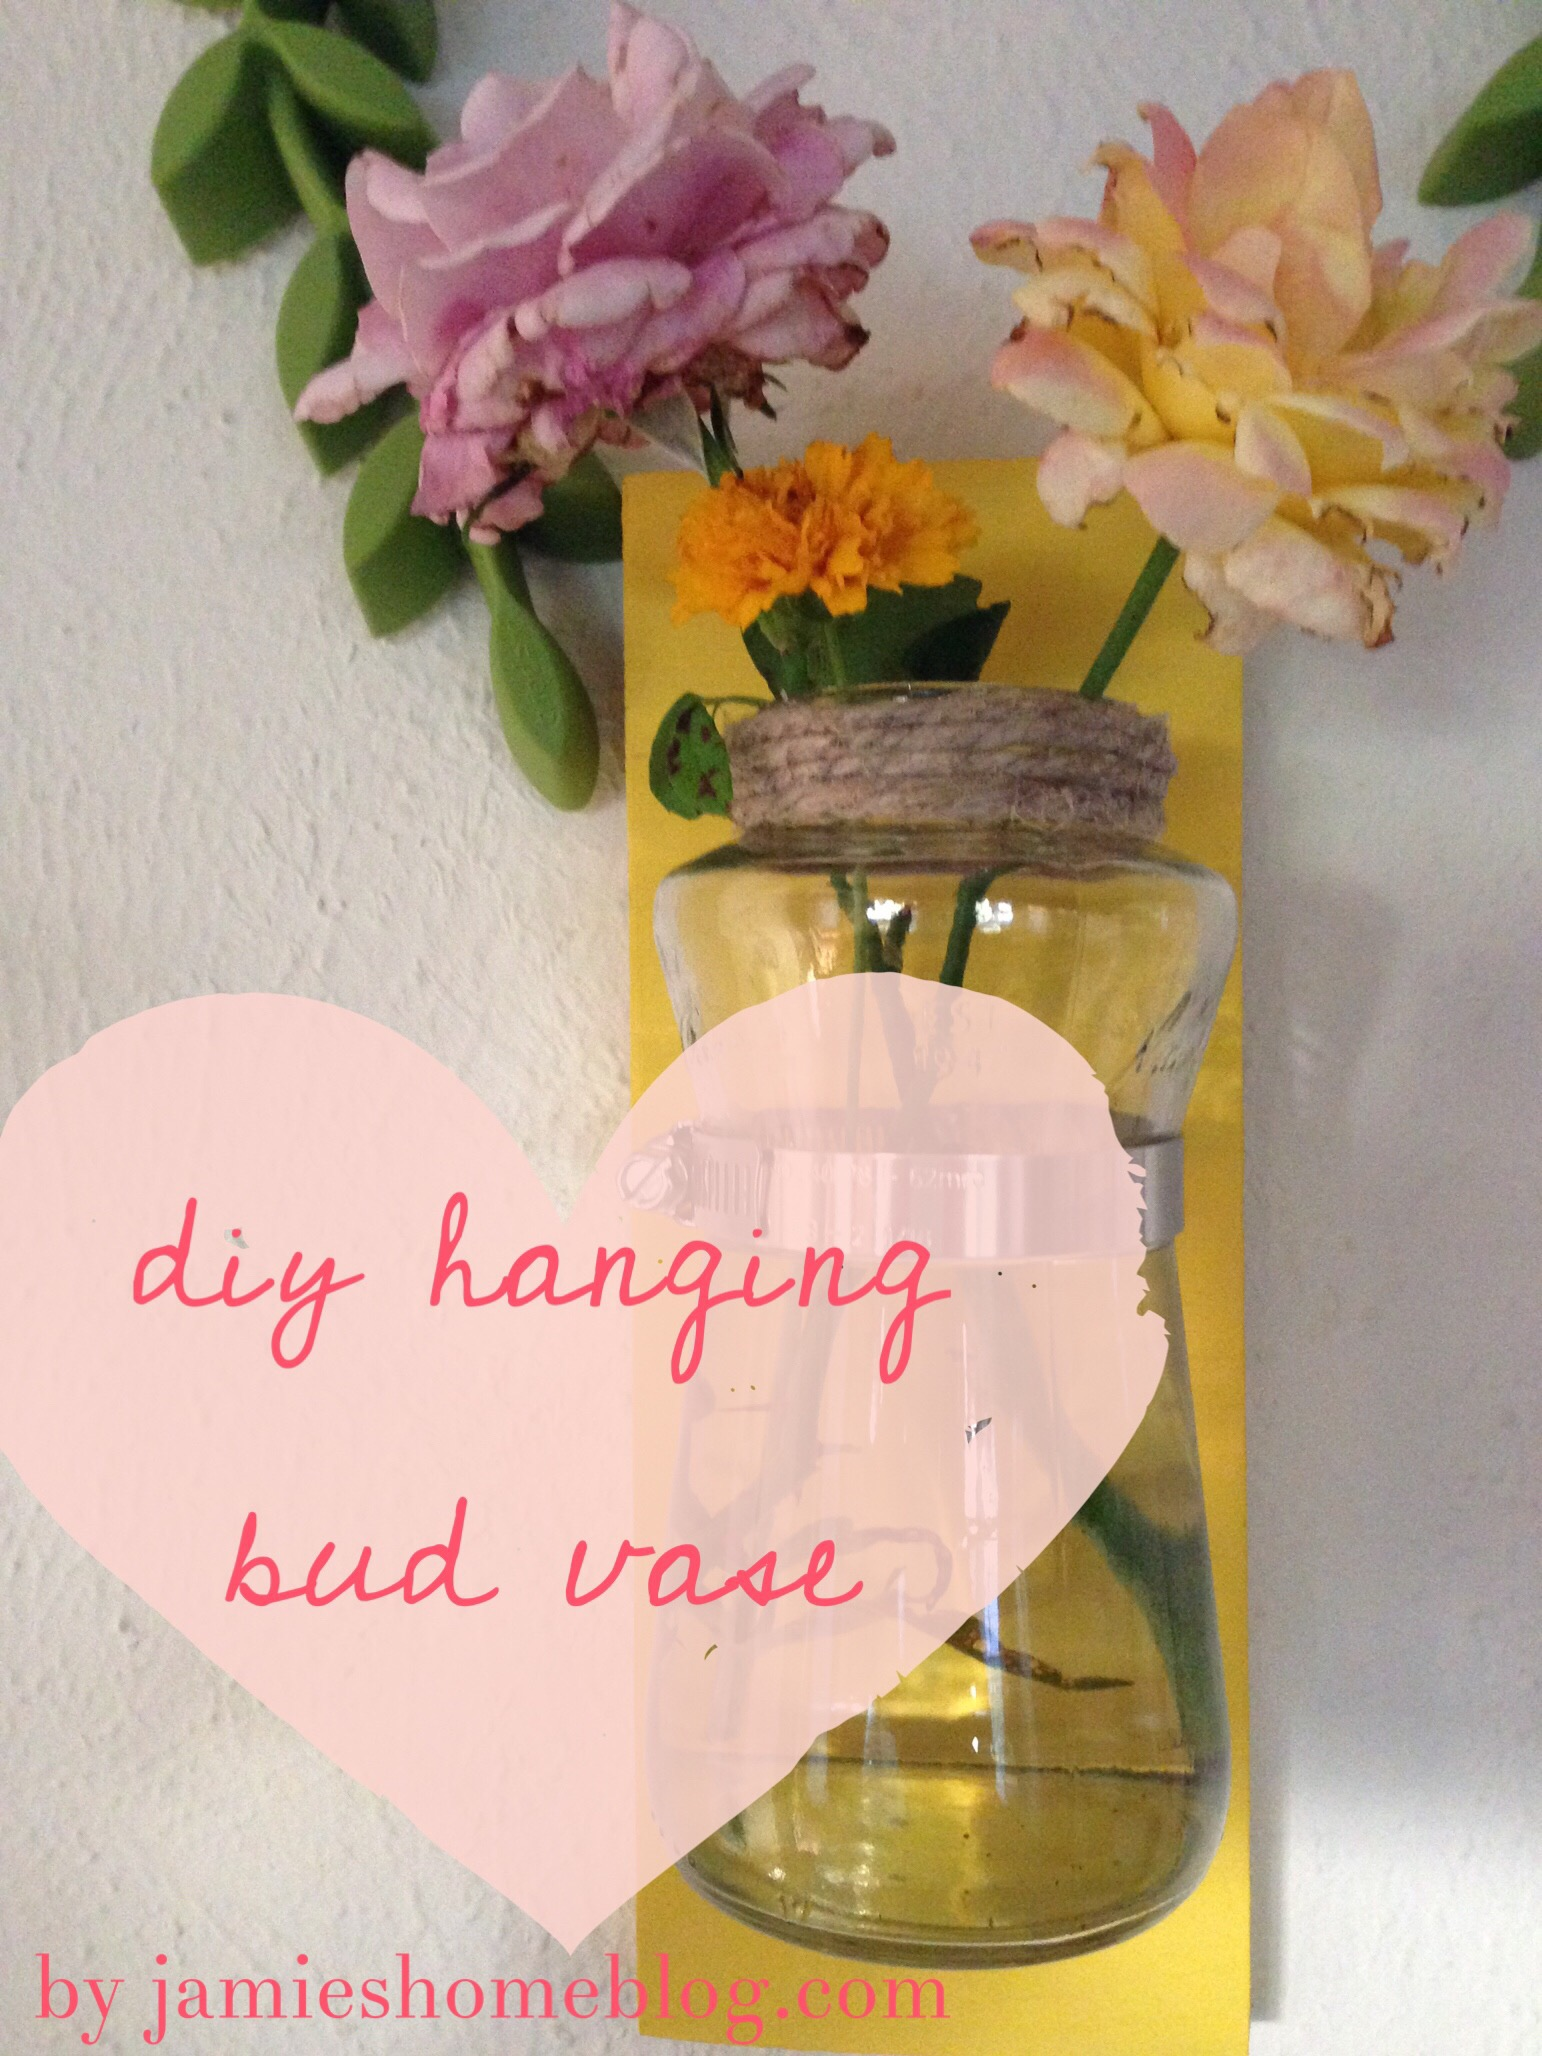 Diy hanging bud vase jamies home blog buzzfeeds nifty facebook page posted a video of three mason jars being mounted to a board to display succulents organize your bathroom etc reviewsmspy